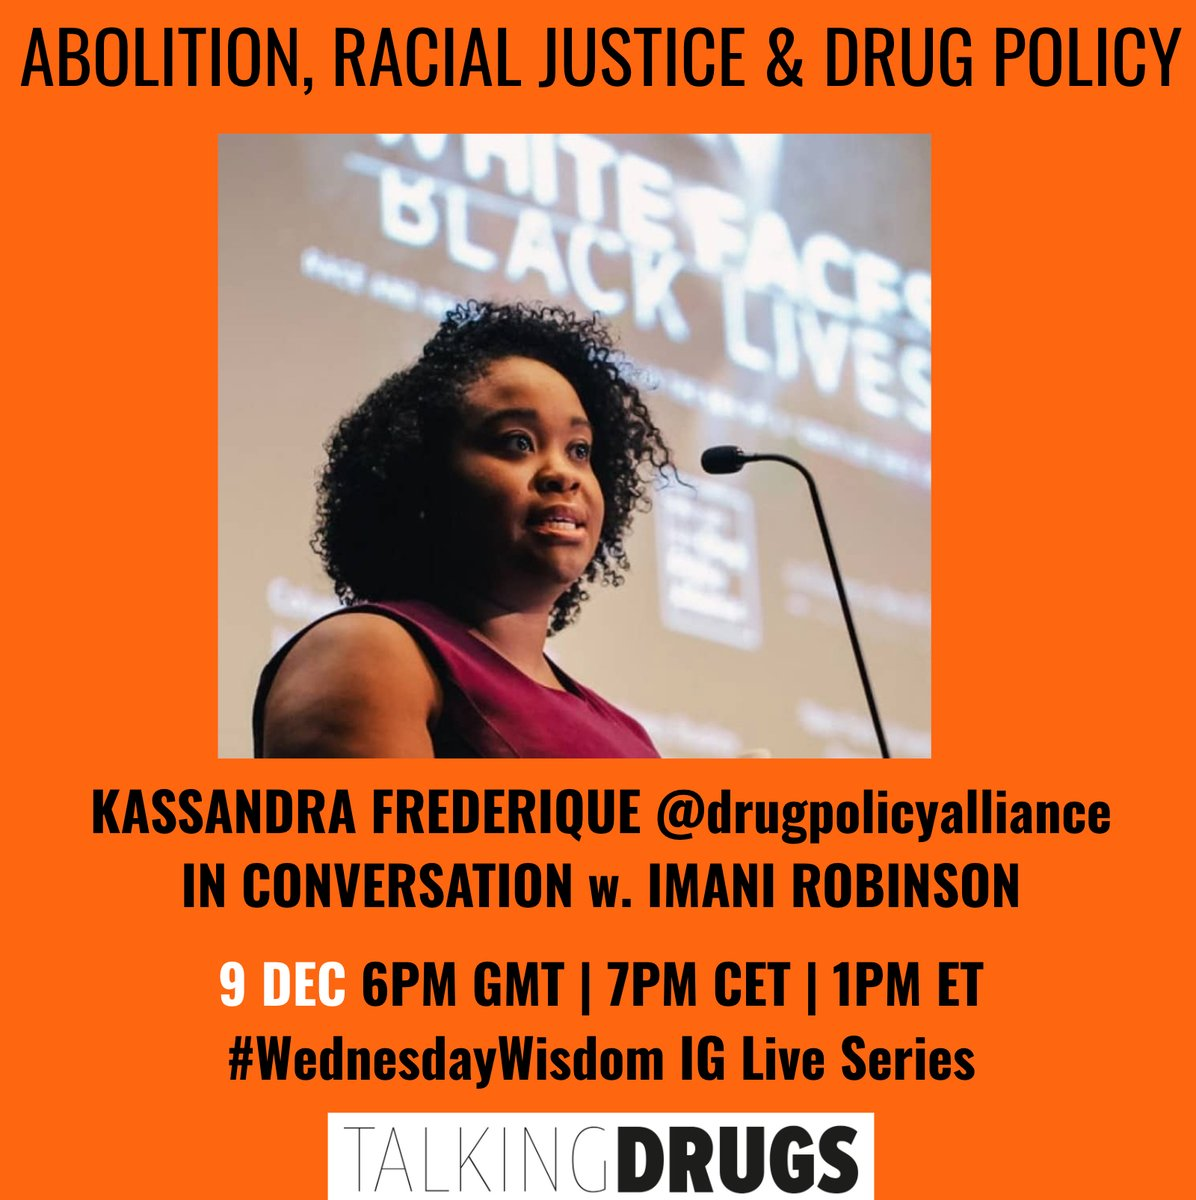 Exec Dir, @Kassandra_Fred will join @defund_abolish of @Release_drugs in their series on Abolition, Racial Justice & Drug Policy. Join 12/9 @ 1pmEST on Instagram Live! #WednesdayWisdom #NMDW #DrugPolicy #Abolition #RacialJustice #Decriminalization #EndTheWarOnDrugs